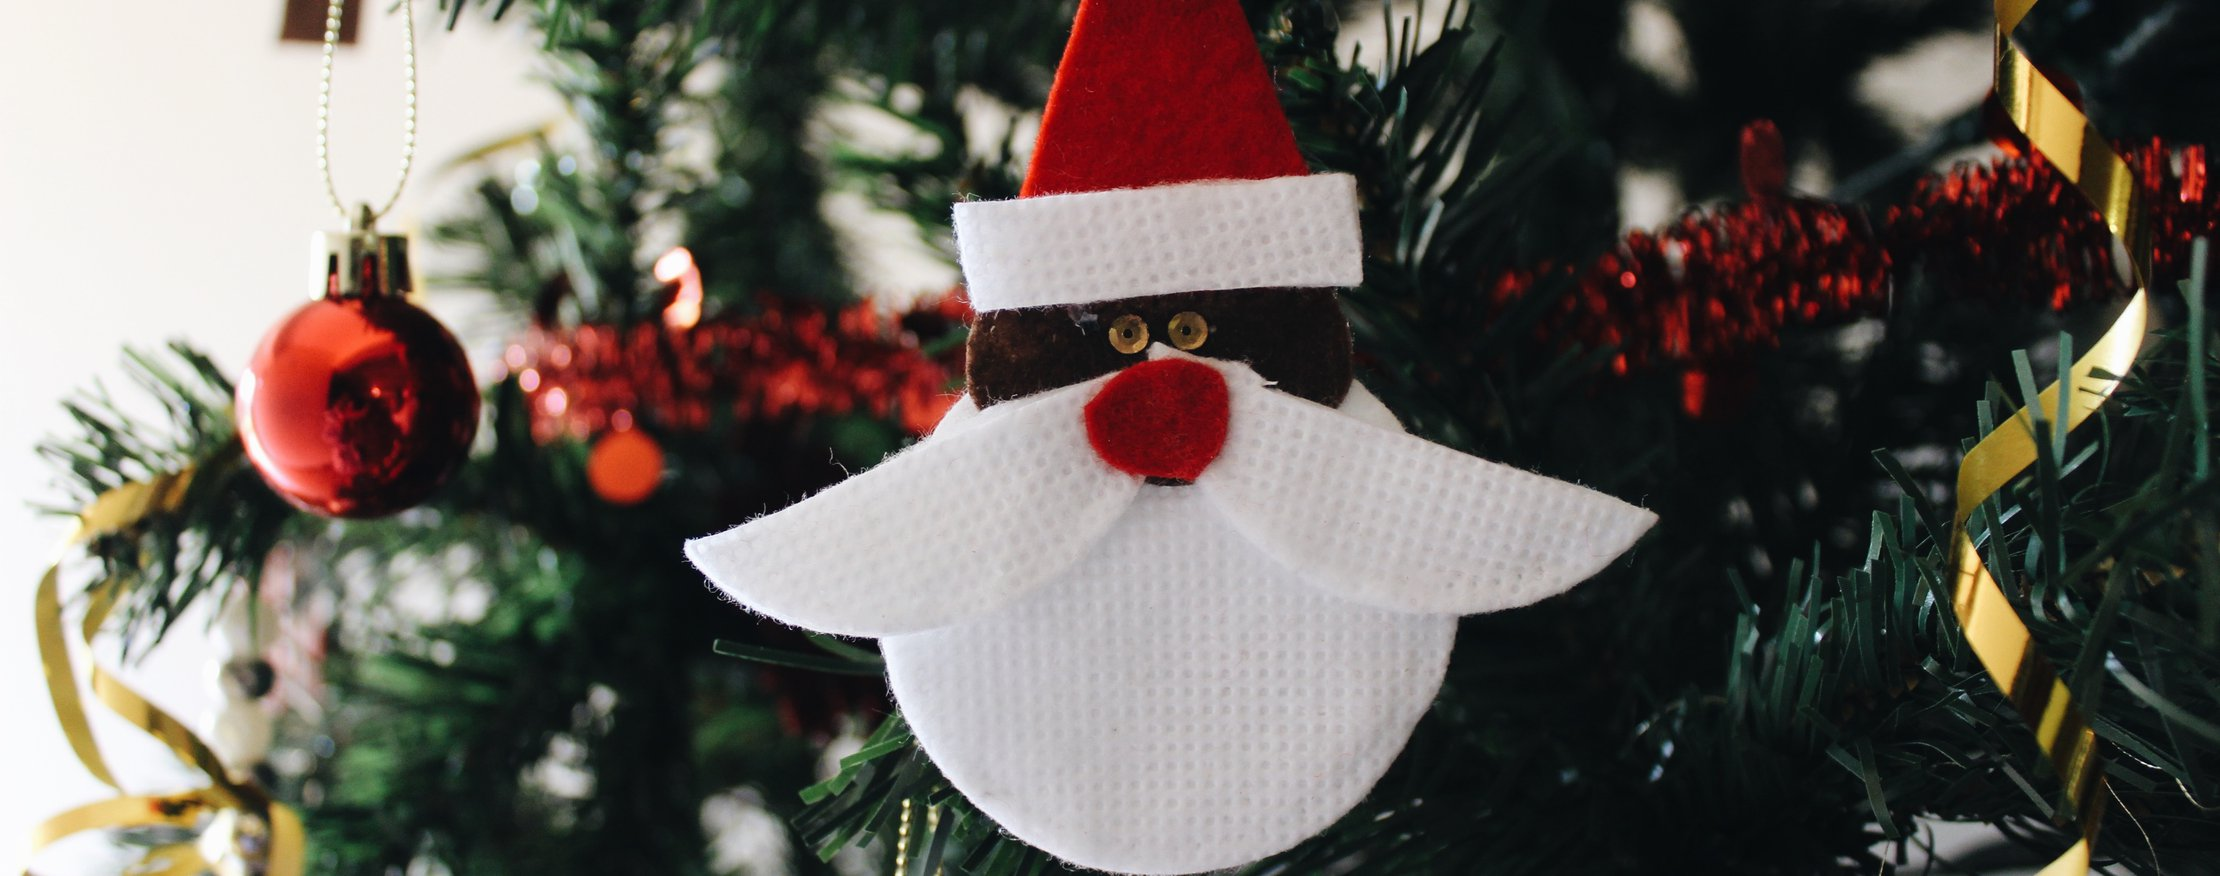 bauble decorated to look like santa